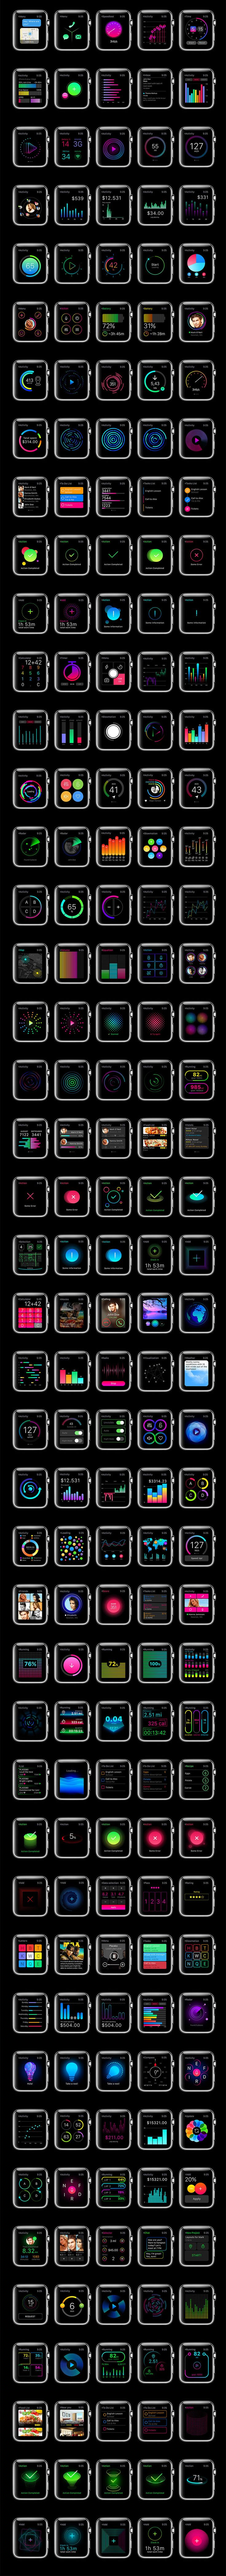 Apple Watch UI Kit | + Enahnce your #MacBook / #iMac experience , visit: http://pdsp.us/macbookcleanse